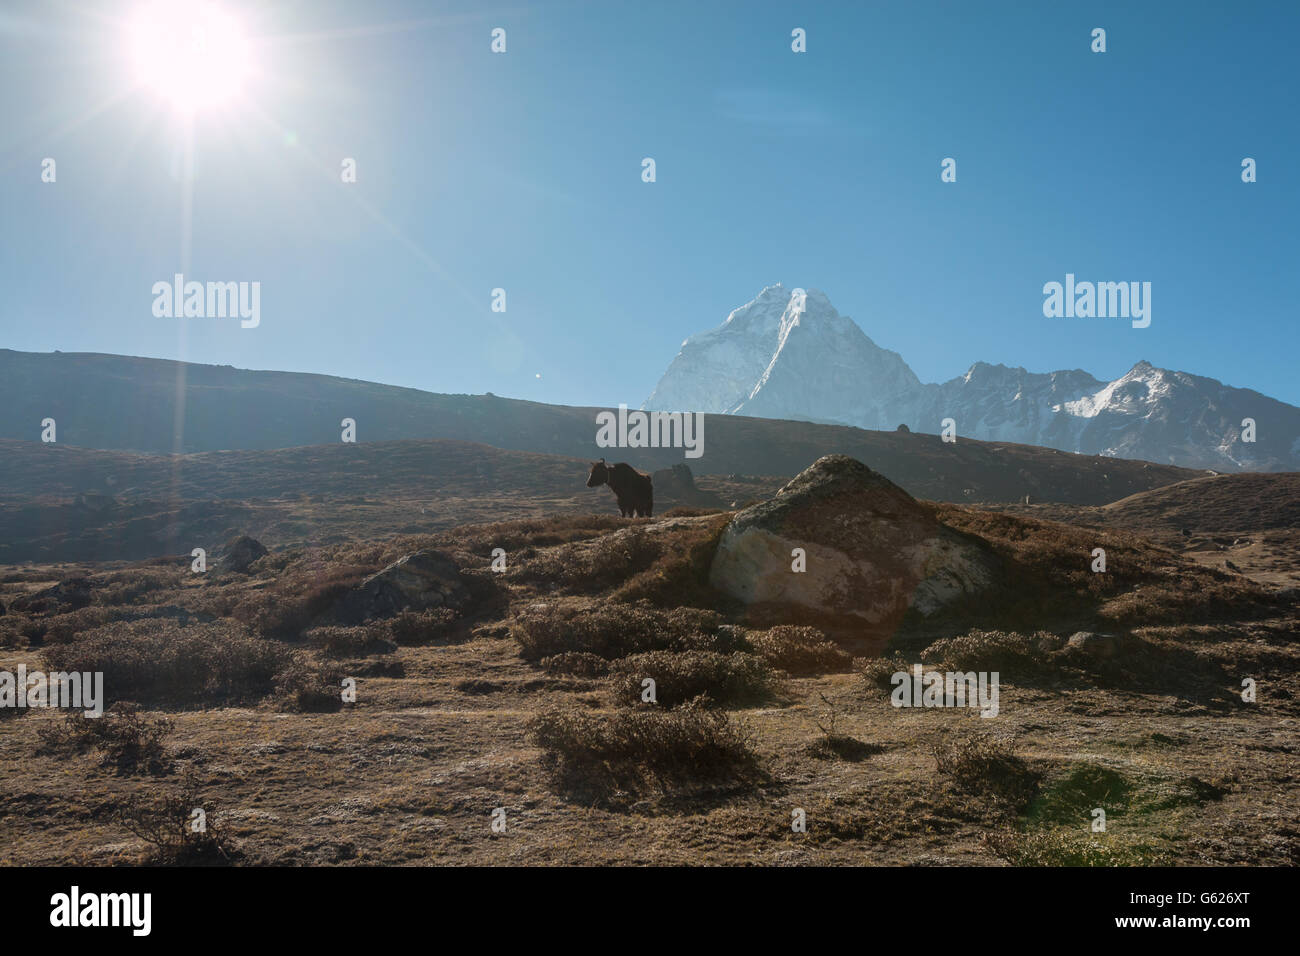 Yak in Himalayan mountain - Stock Image